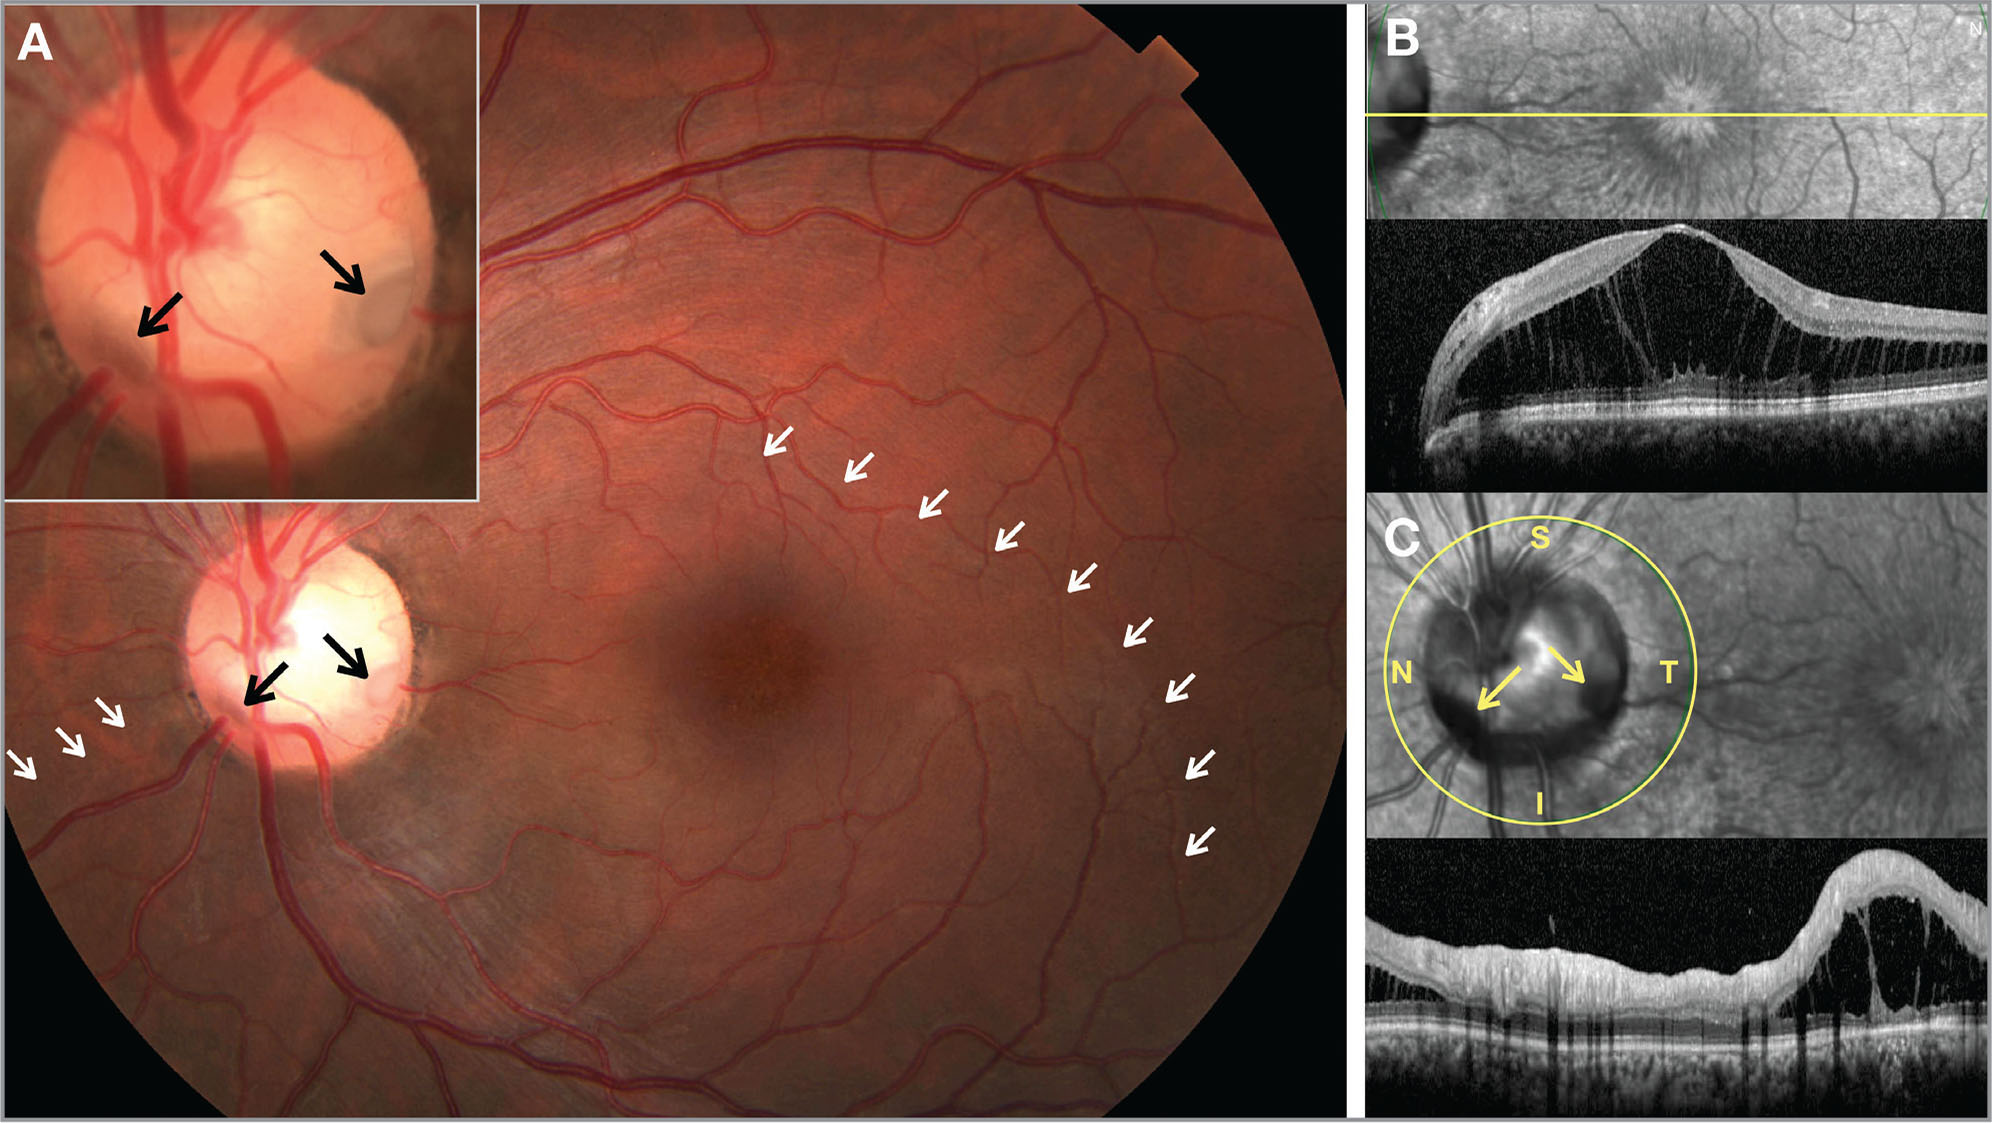 Two distinct optic disc pits are visible on funduscopy (back arrows); the border of intraretinal fluid is denoted with white arrows (A). Maculopathy and splitting (schisis) of the outer retinal layers is seen on optical coherence tomography (B). Intraretinal fluid extends nasally (C).